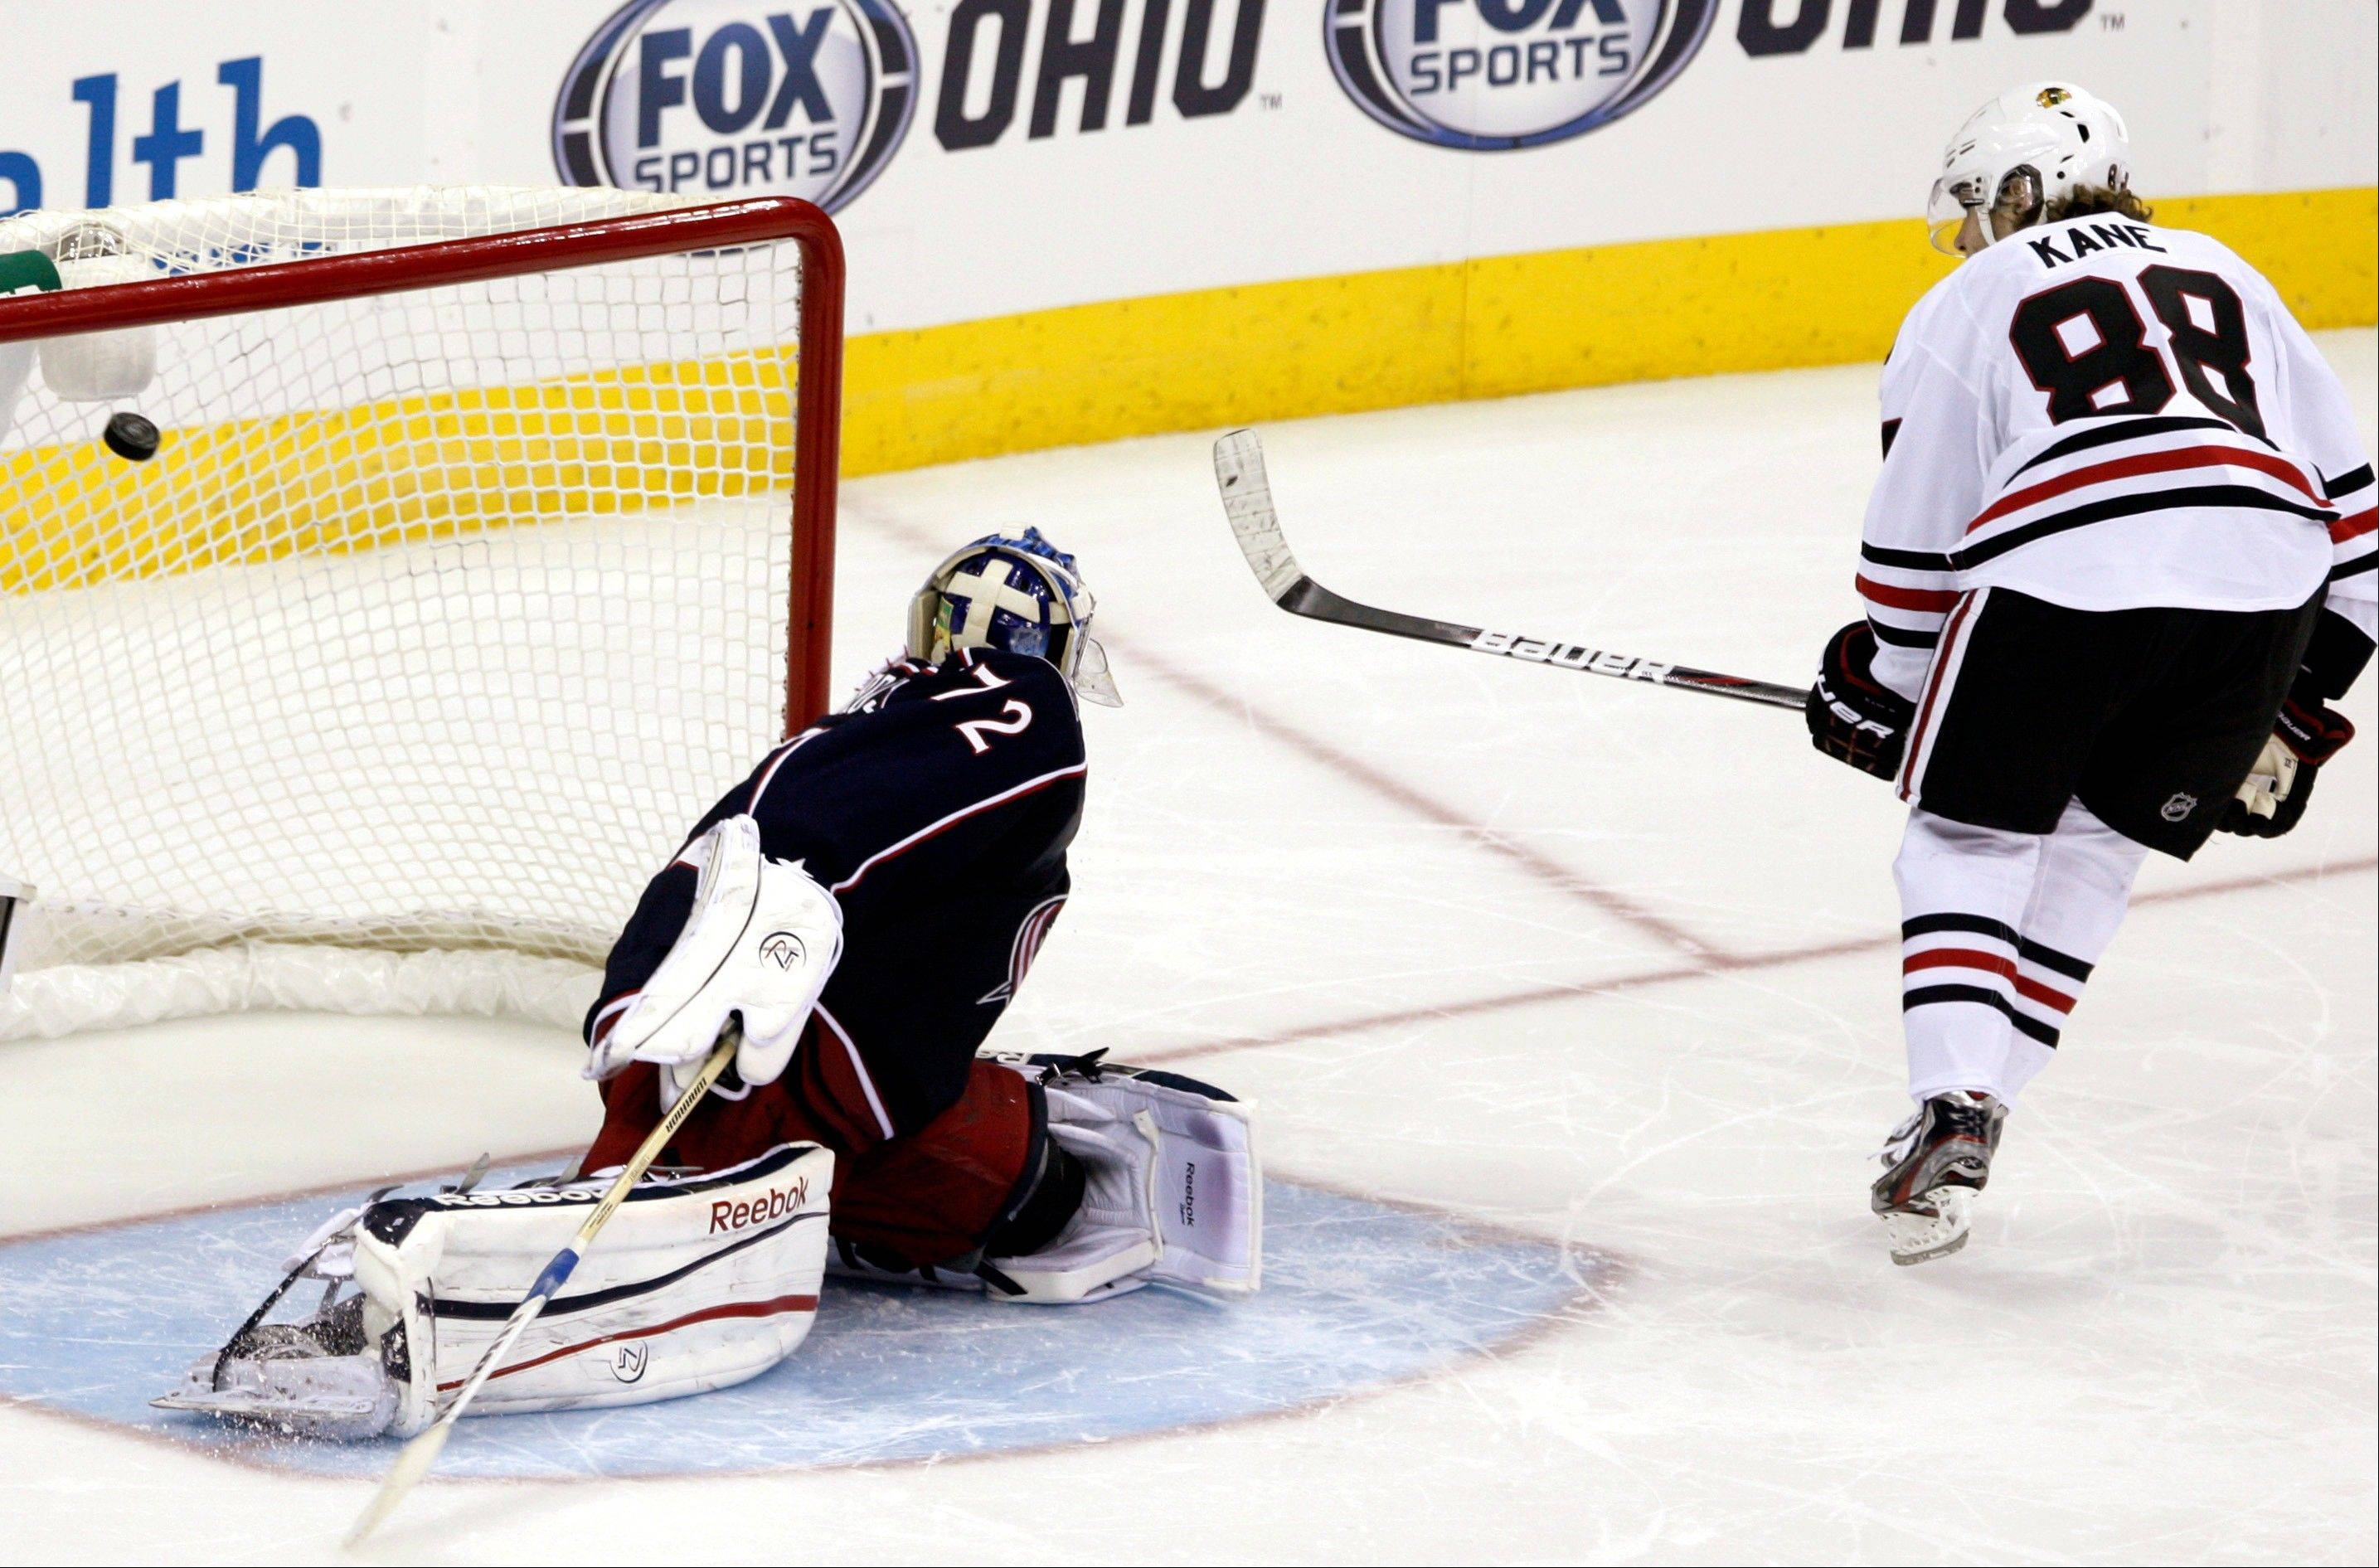 Patrick Kane scores against Columbus Blue Jackets' Sergi Bobrovsky, of Russia, in the shootout in Columbus, Ohio, Thursday, March 14, 2013. The Blackhawks won 2-1.